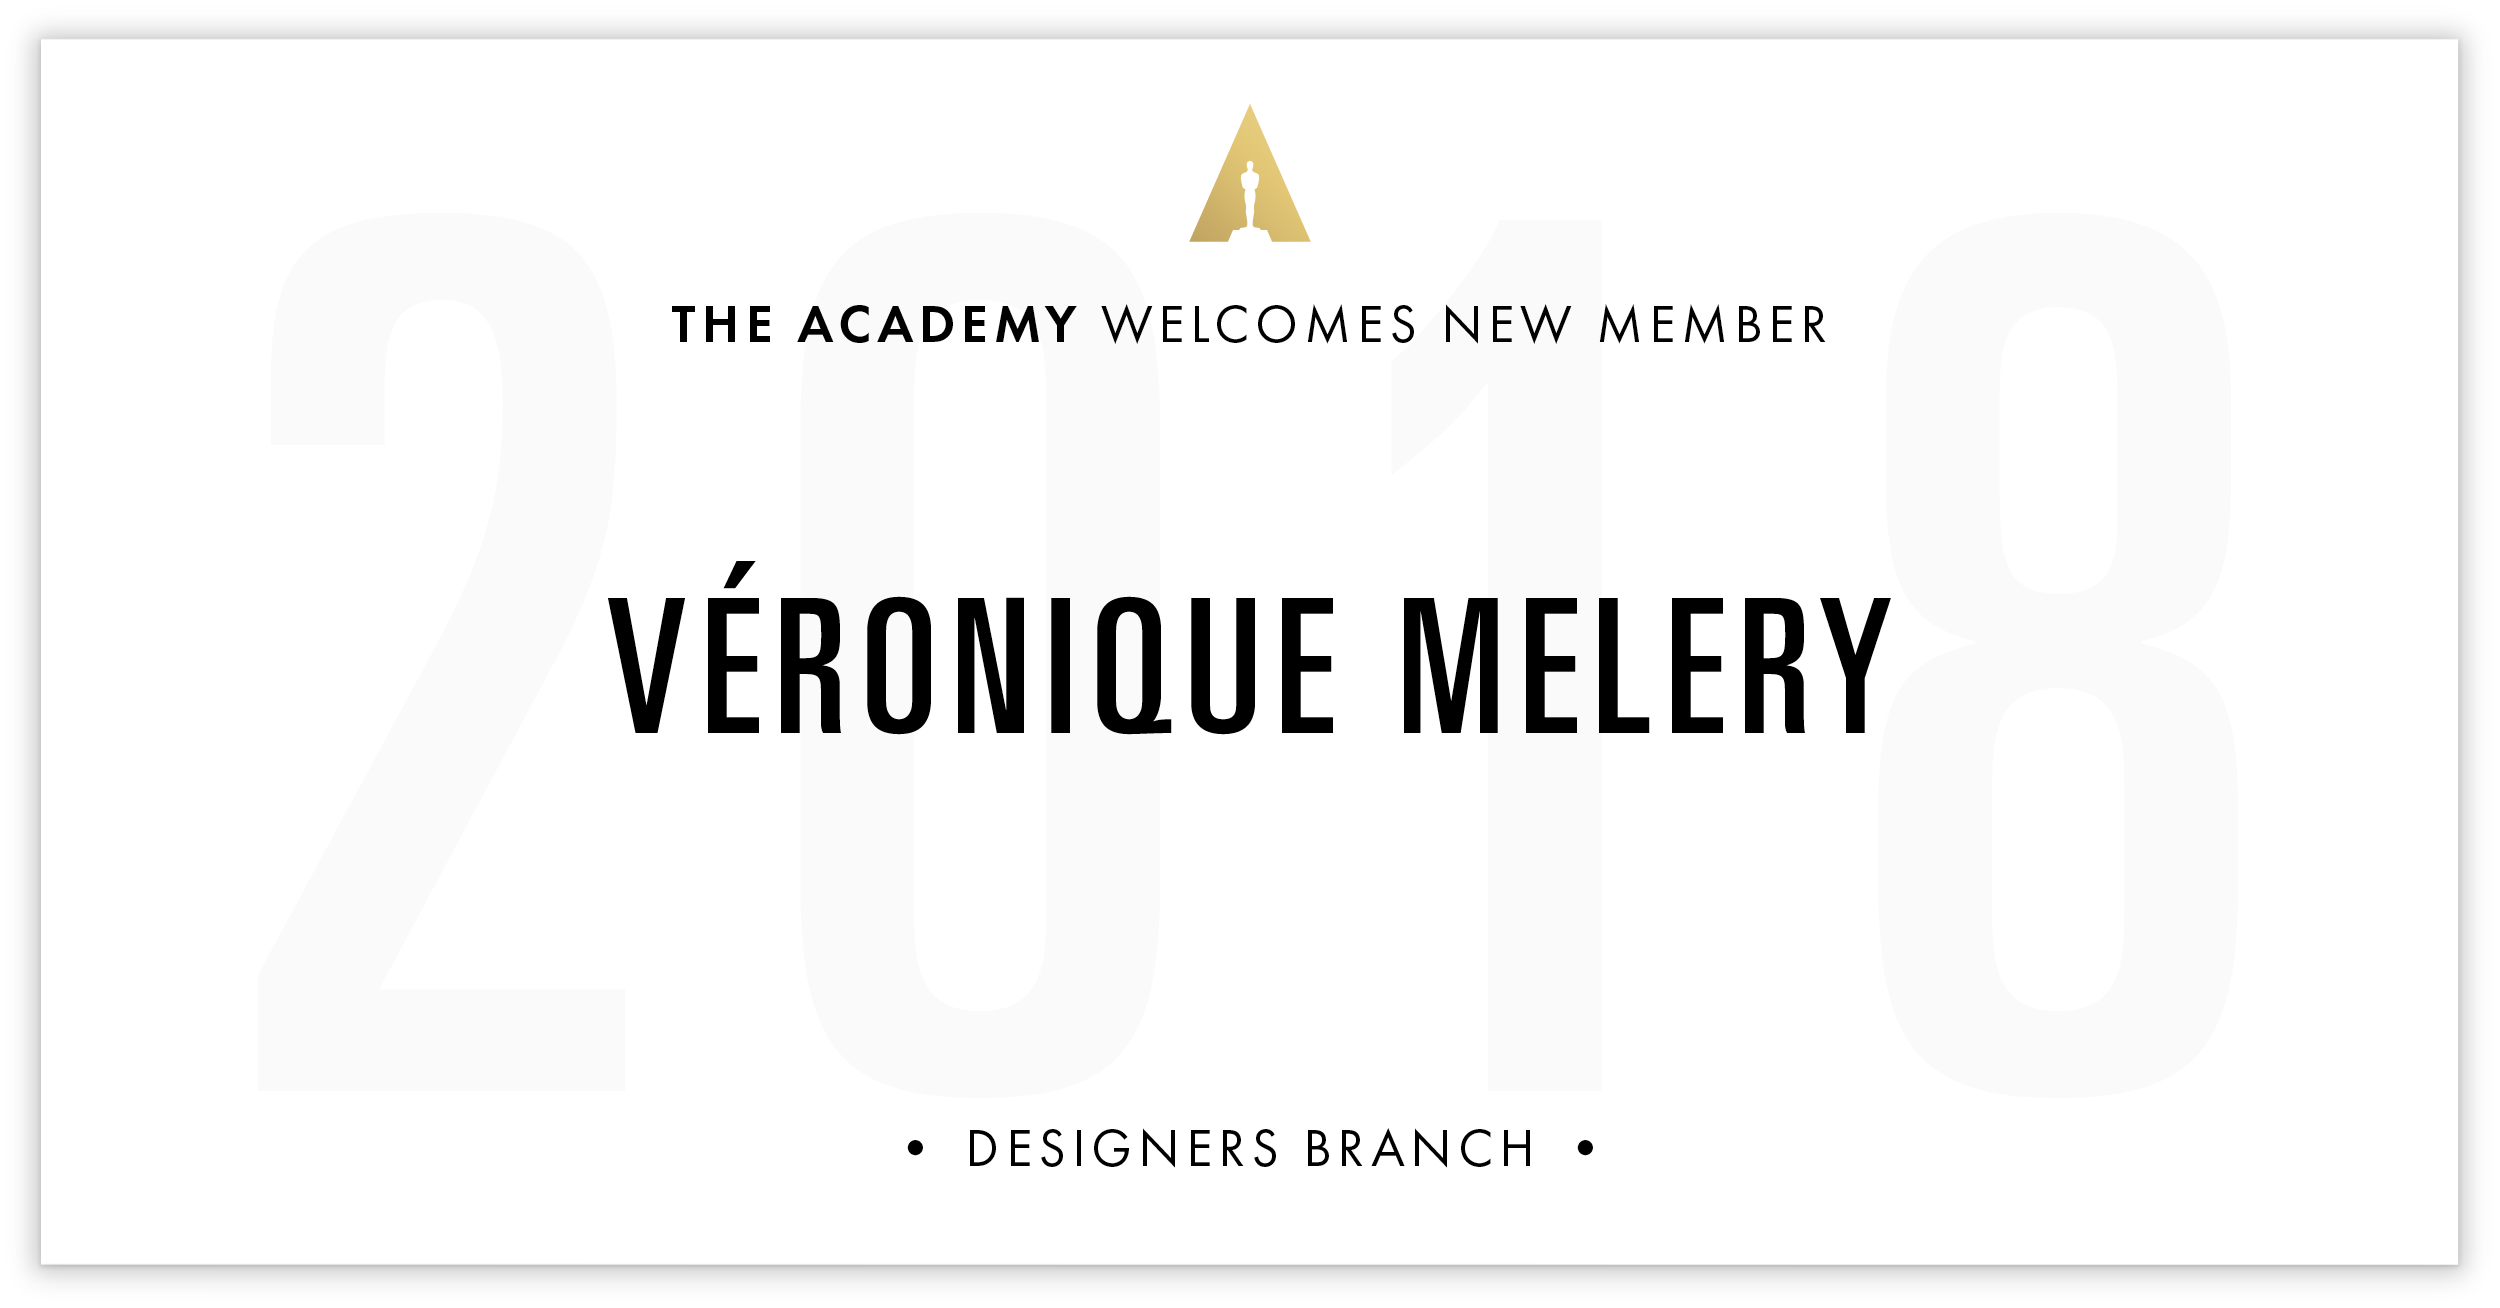 Véronique Melery is invited!